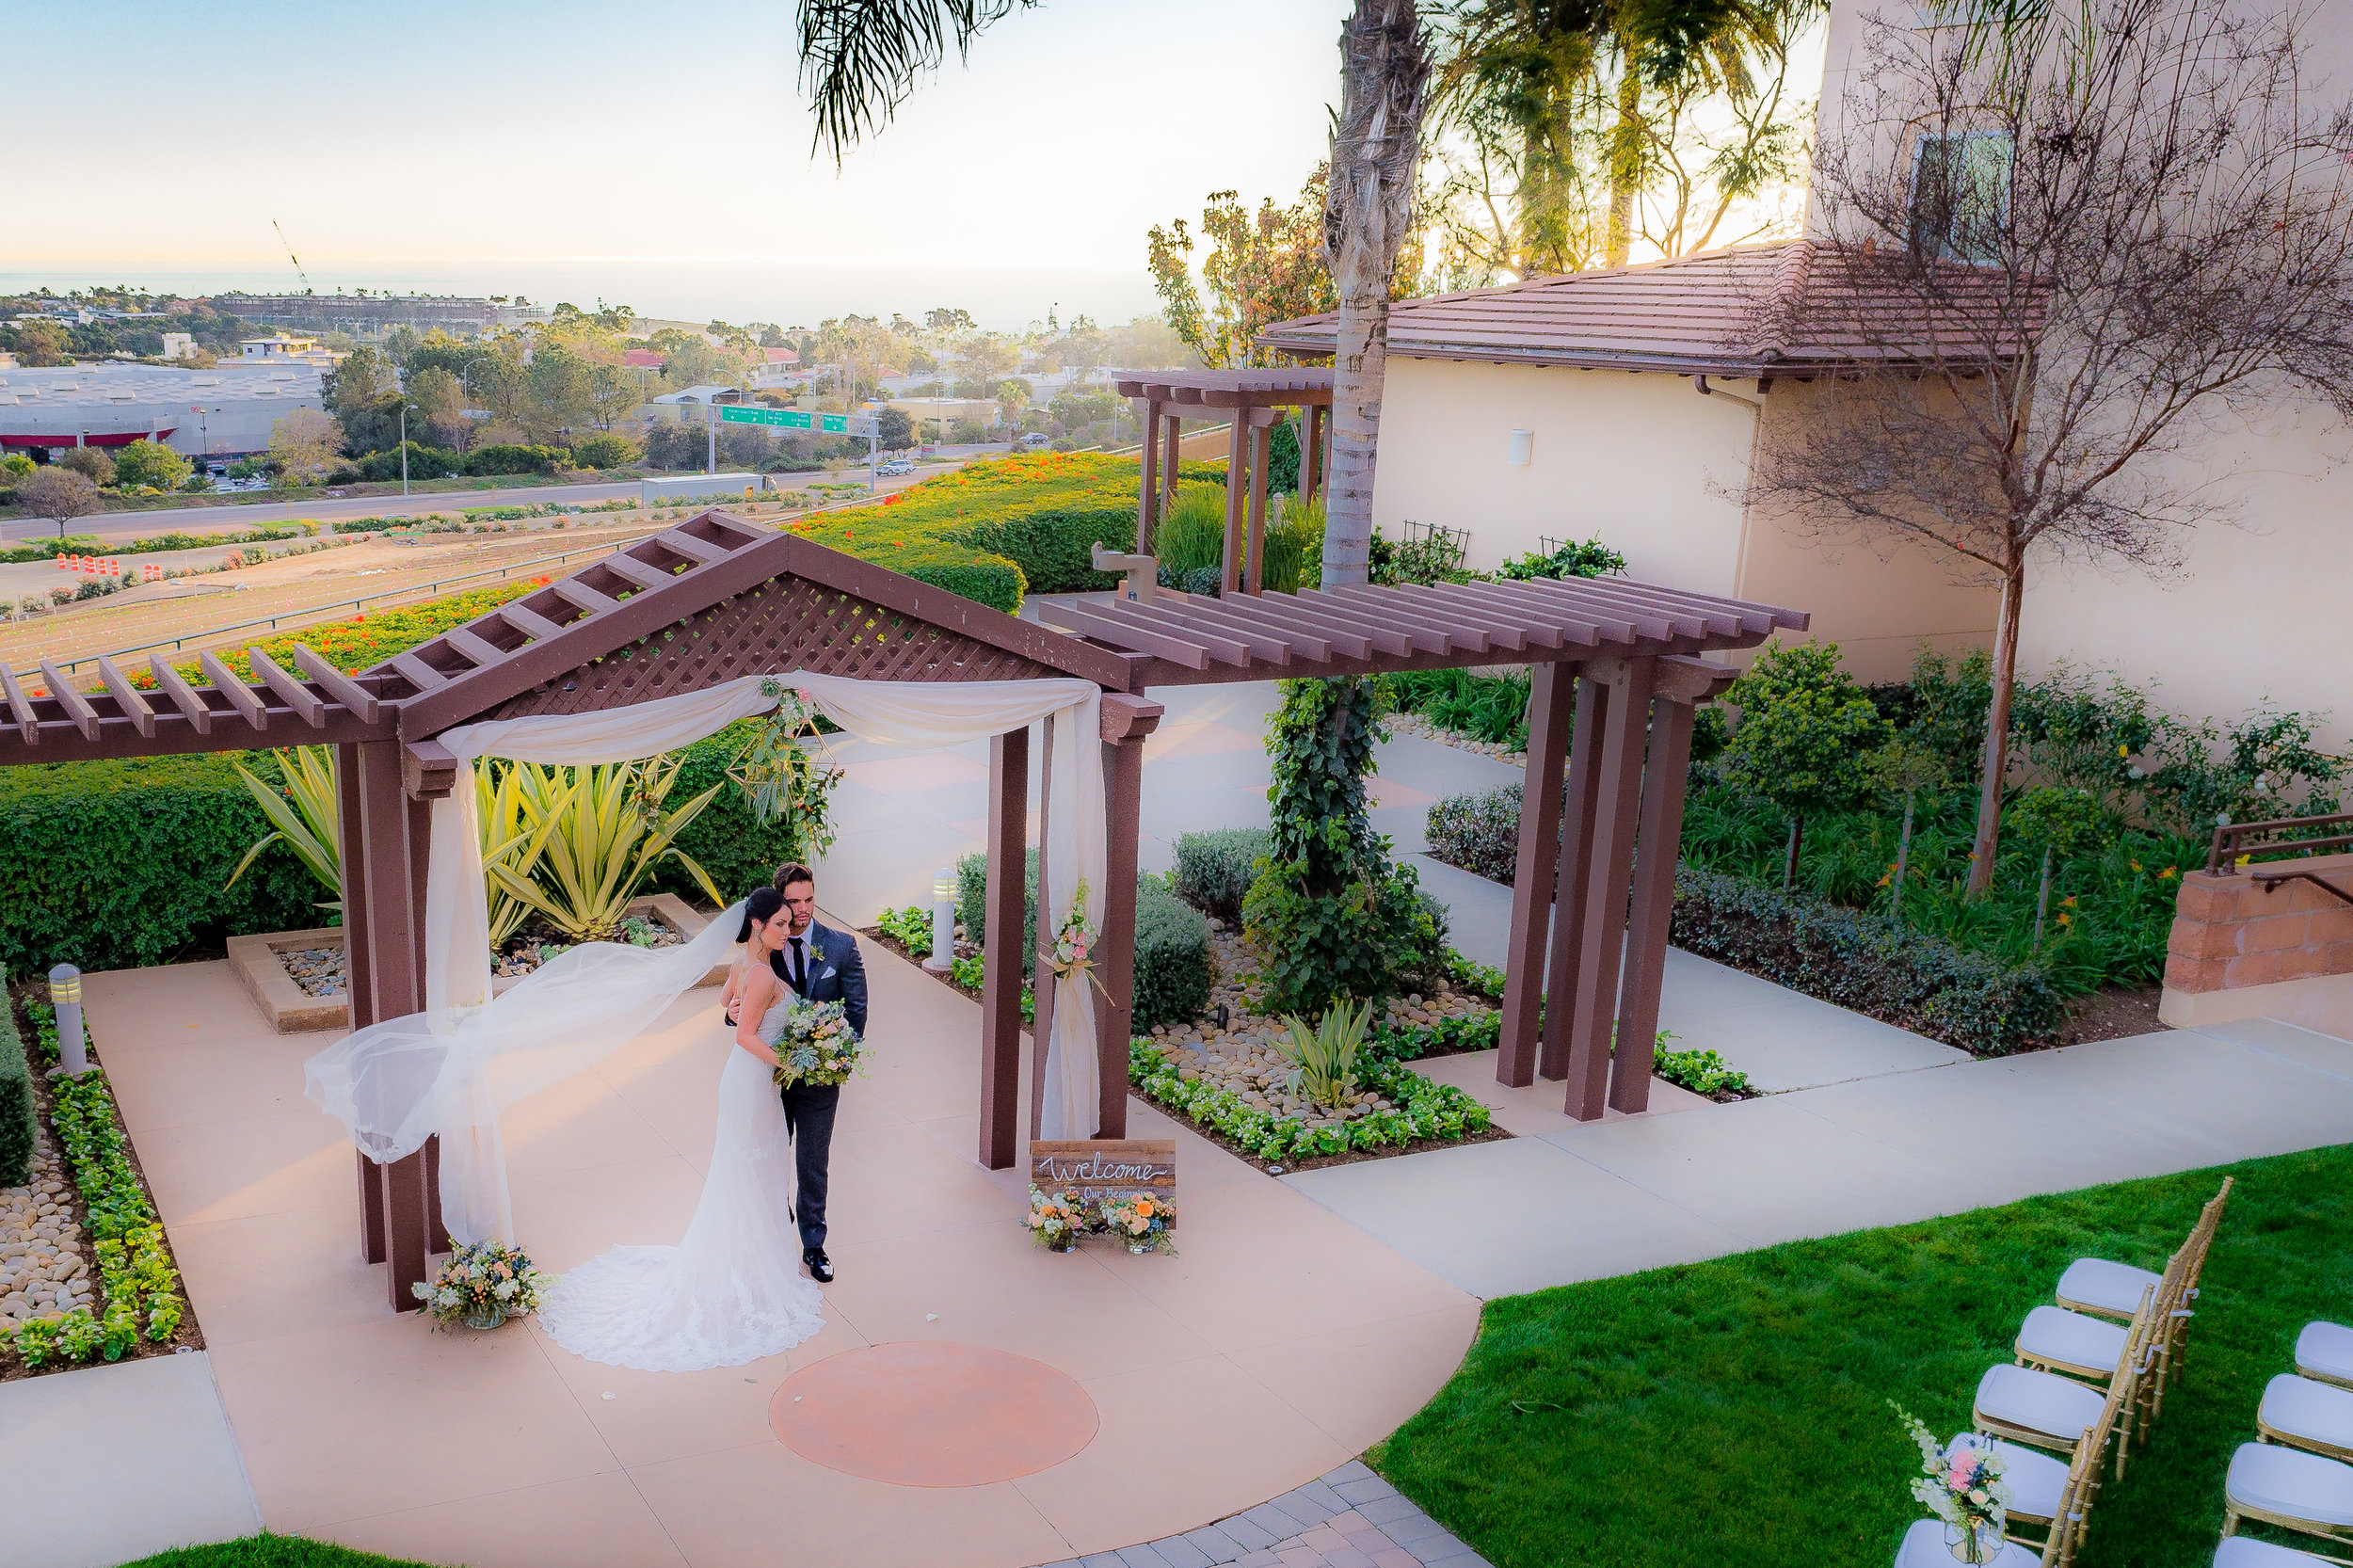 HELIX - Carlsbad Wedding - Aerial Wedding photographer-1.jpg